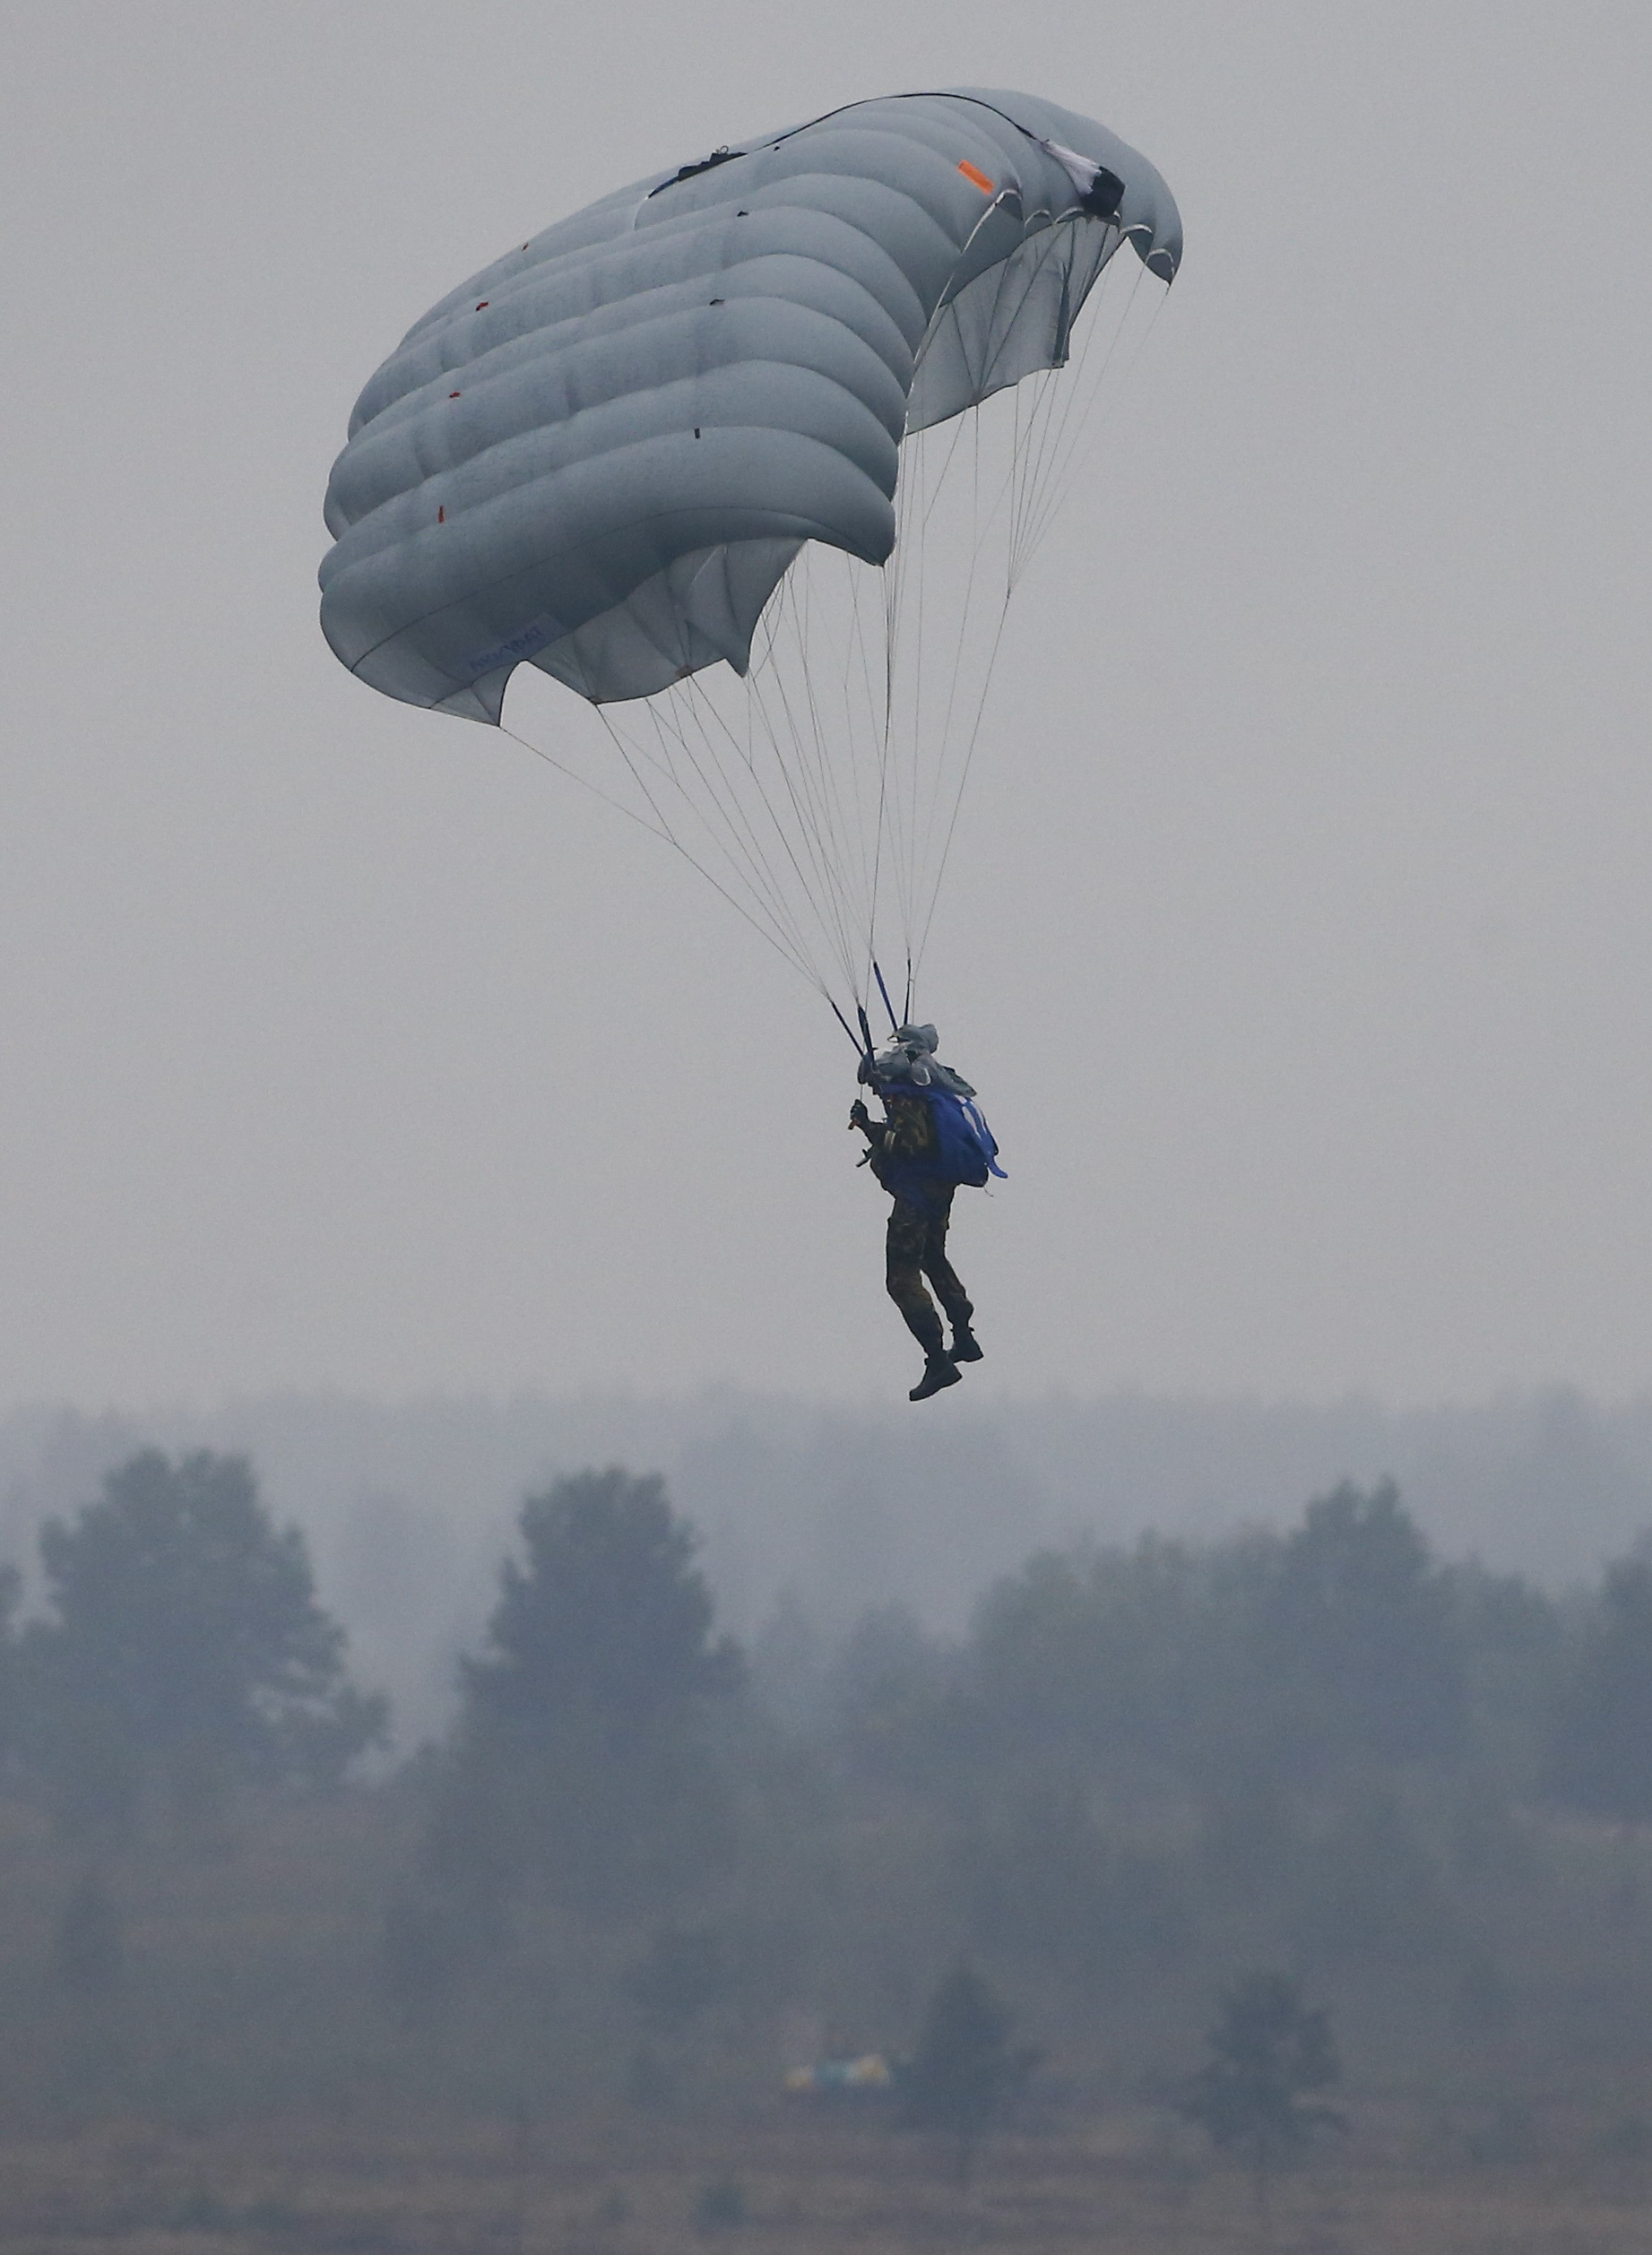 A parachuter descends before landing at a firing range during the Zapad-2017 war games, held by Russian and Belarussian servicemen, outside the town of Ruzhany in Belarus, September 17, 2017.